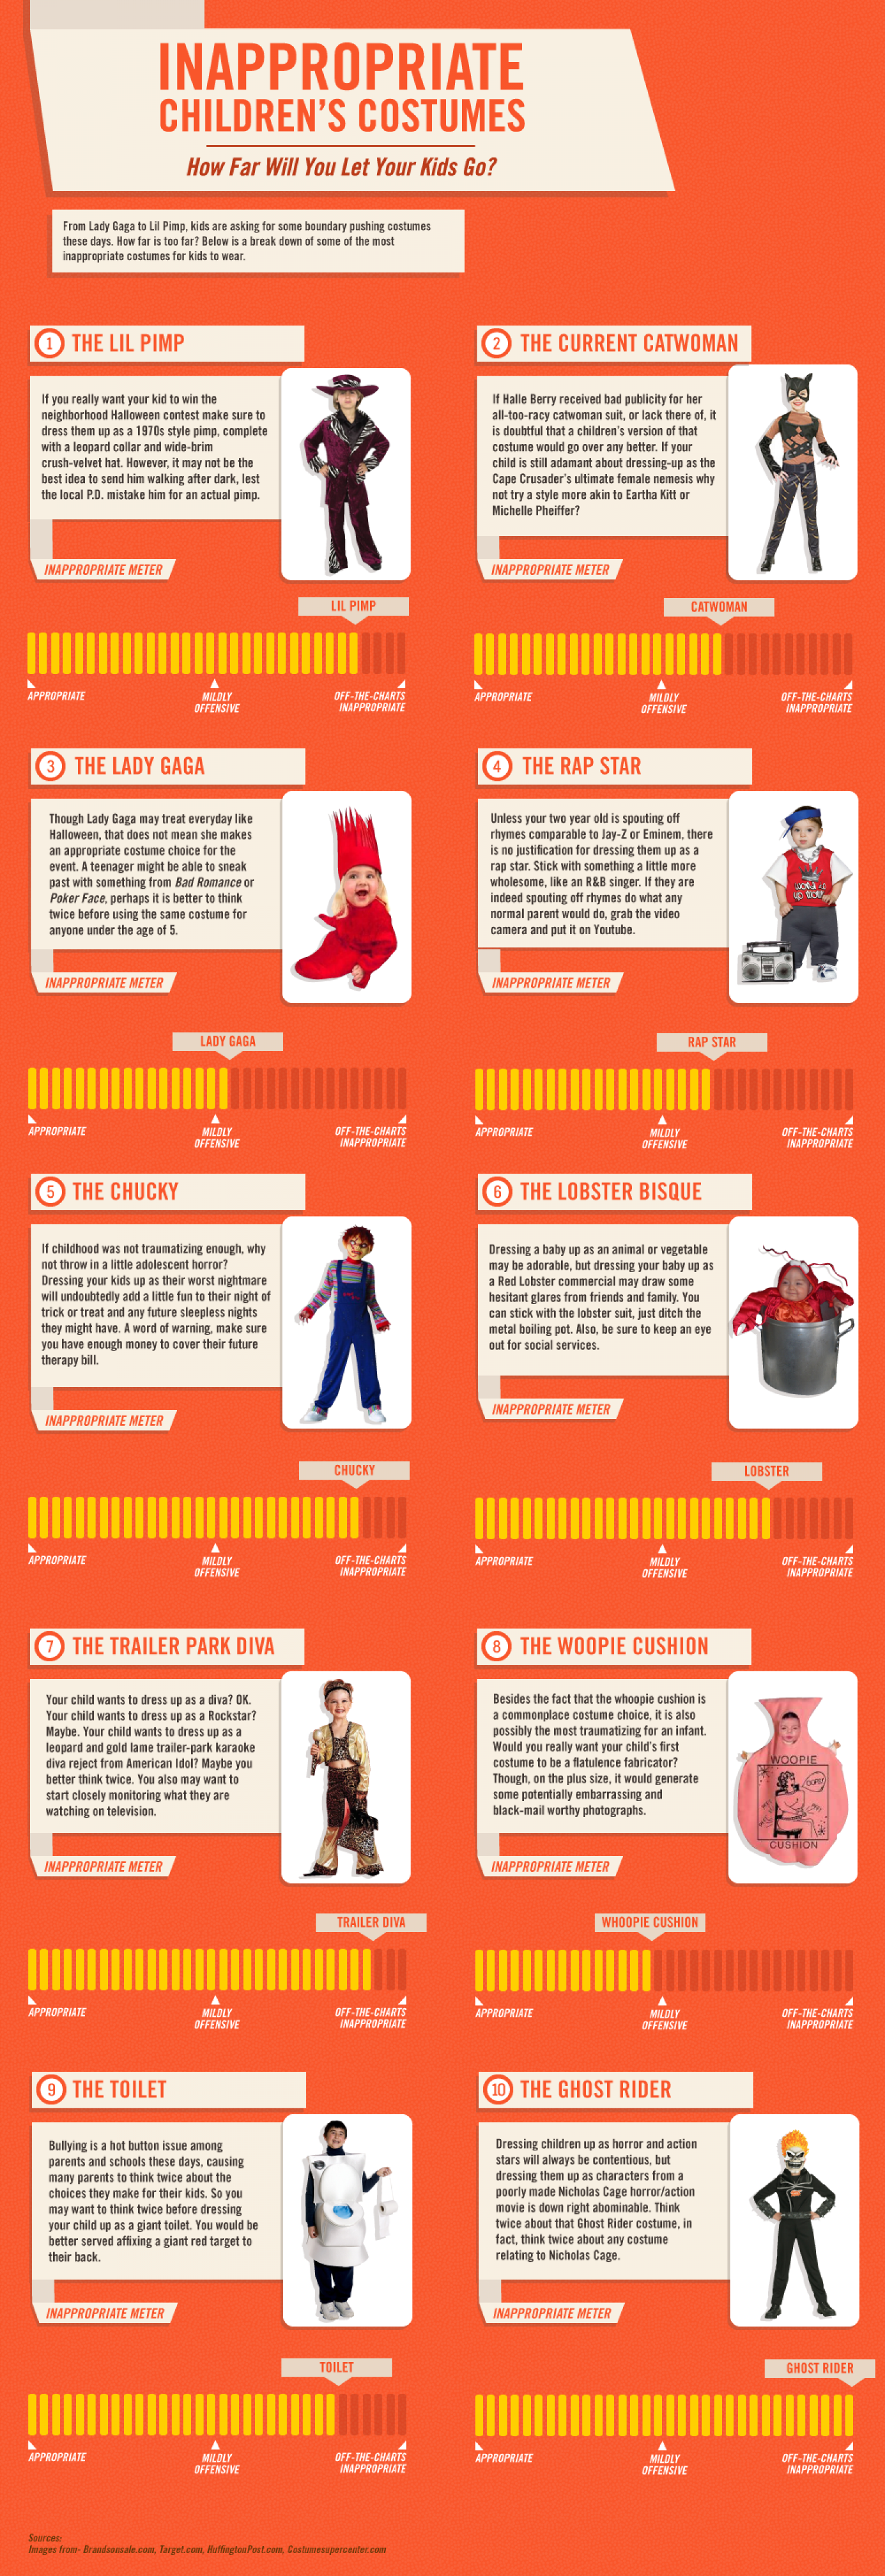 Inappropriate Childrens Costumes Infographic